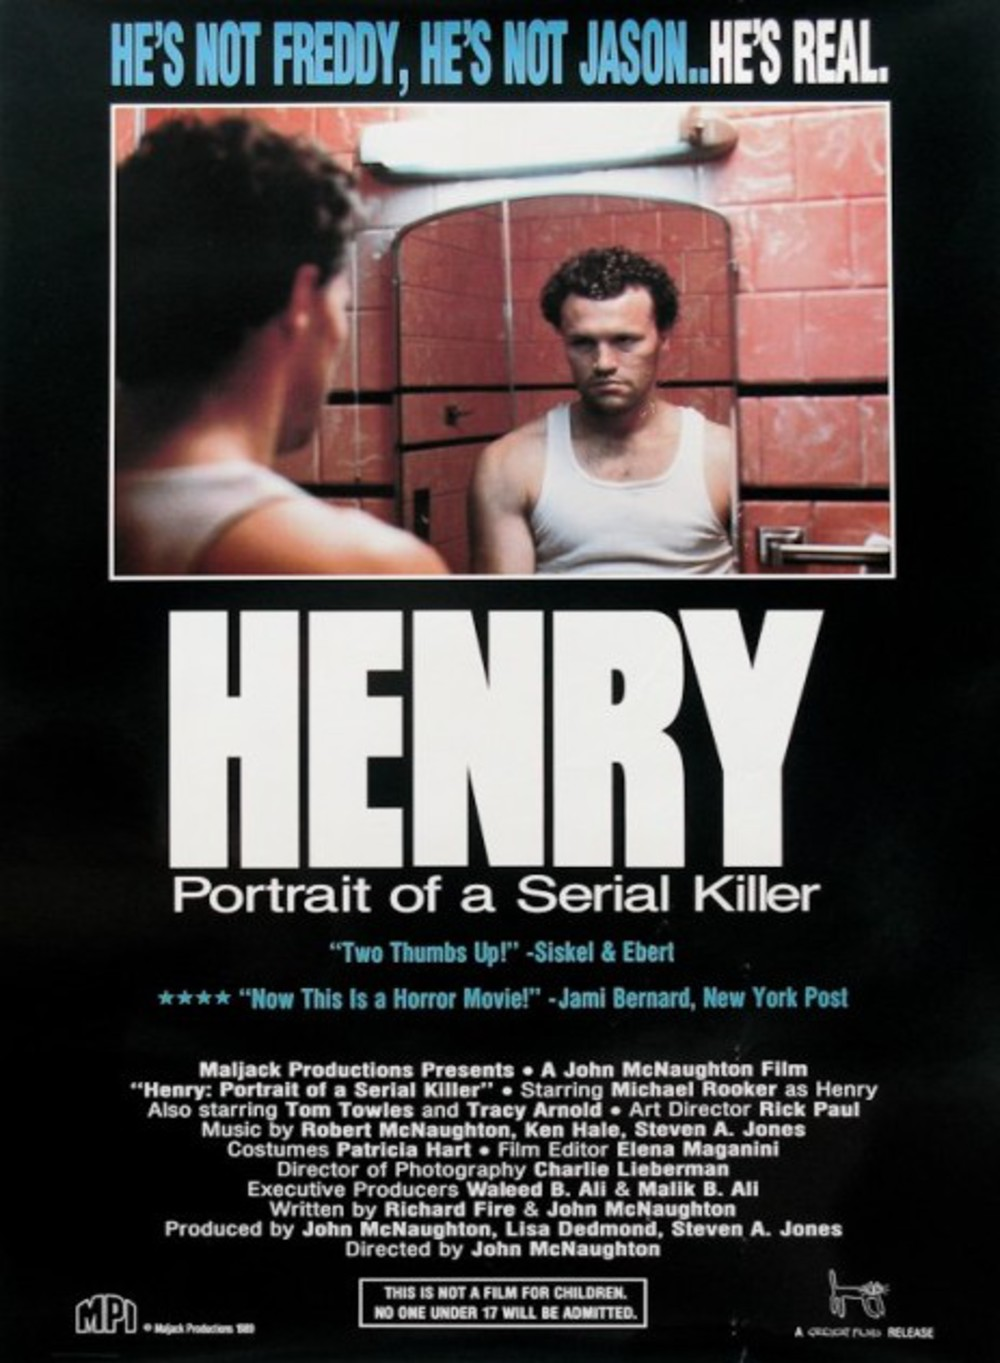 Henry portrait d'un serial killer (1986) de John McNaughton